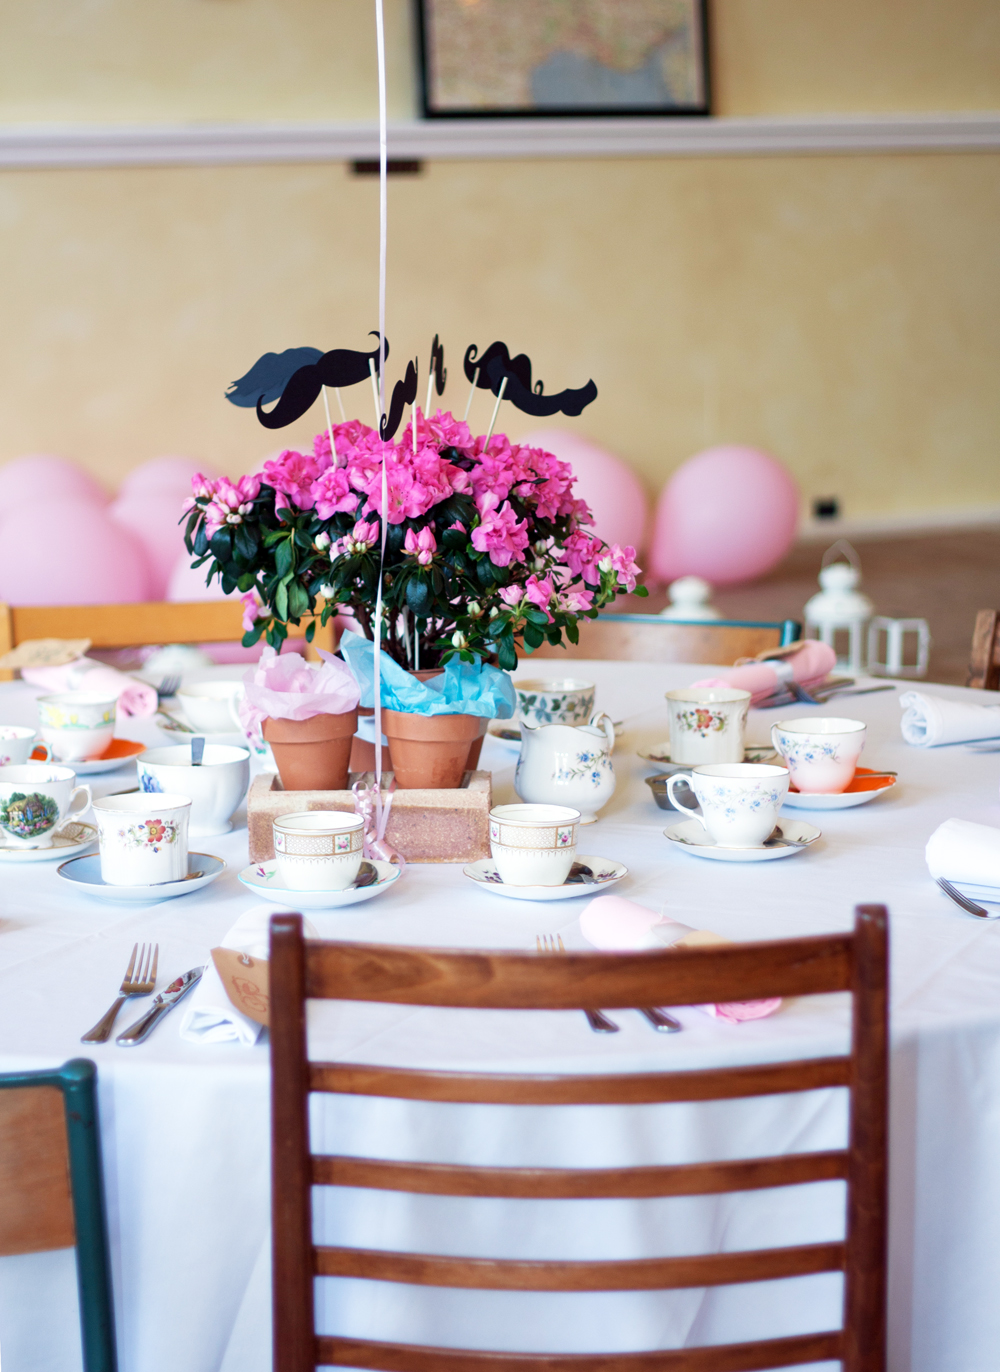 A Photo Of Table At Vintage Style Wedding Tea Party